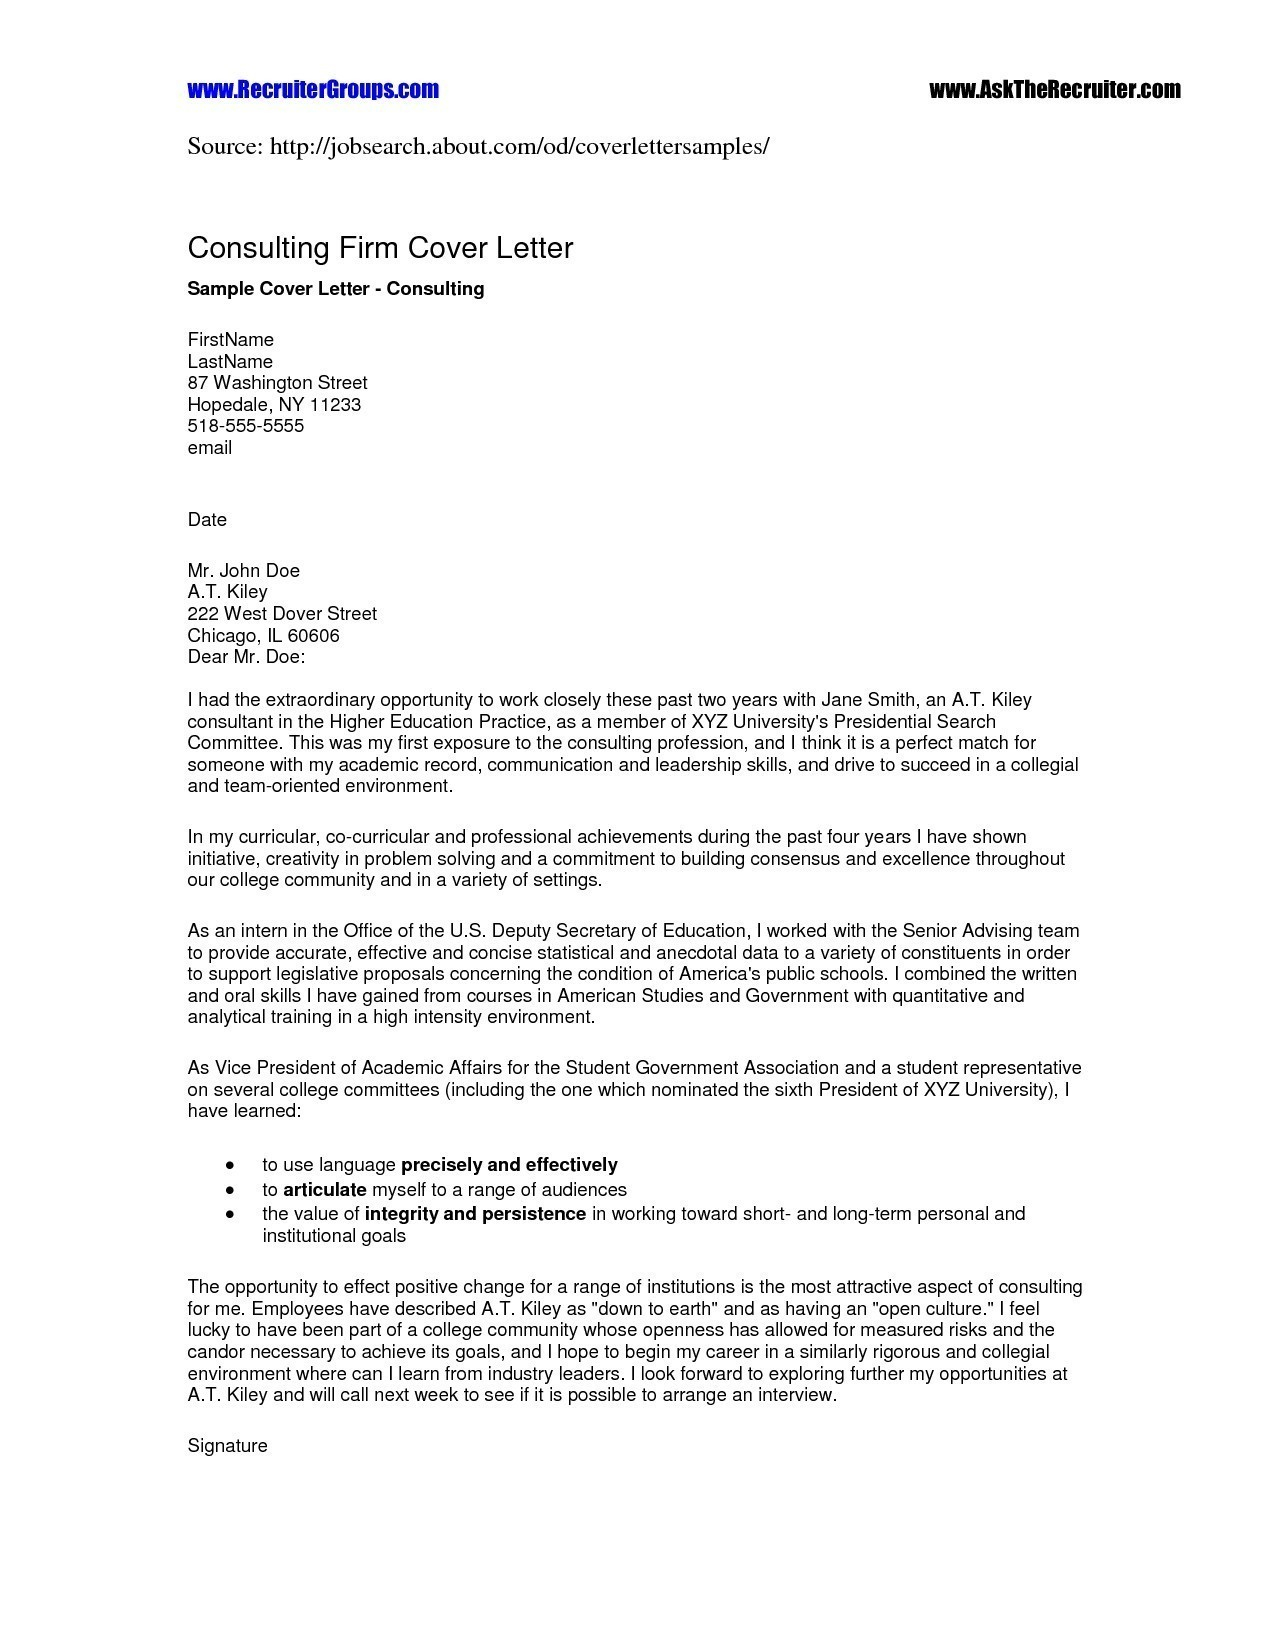 hr letter template Collection-Sample Cover Letter for Tele munication Job Save Job Application Letter format Template Copy Cover Letter Template 3-j